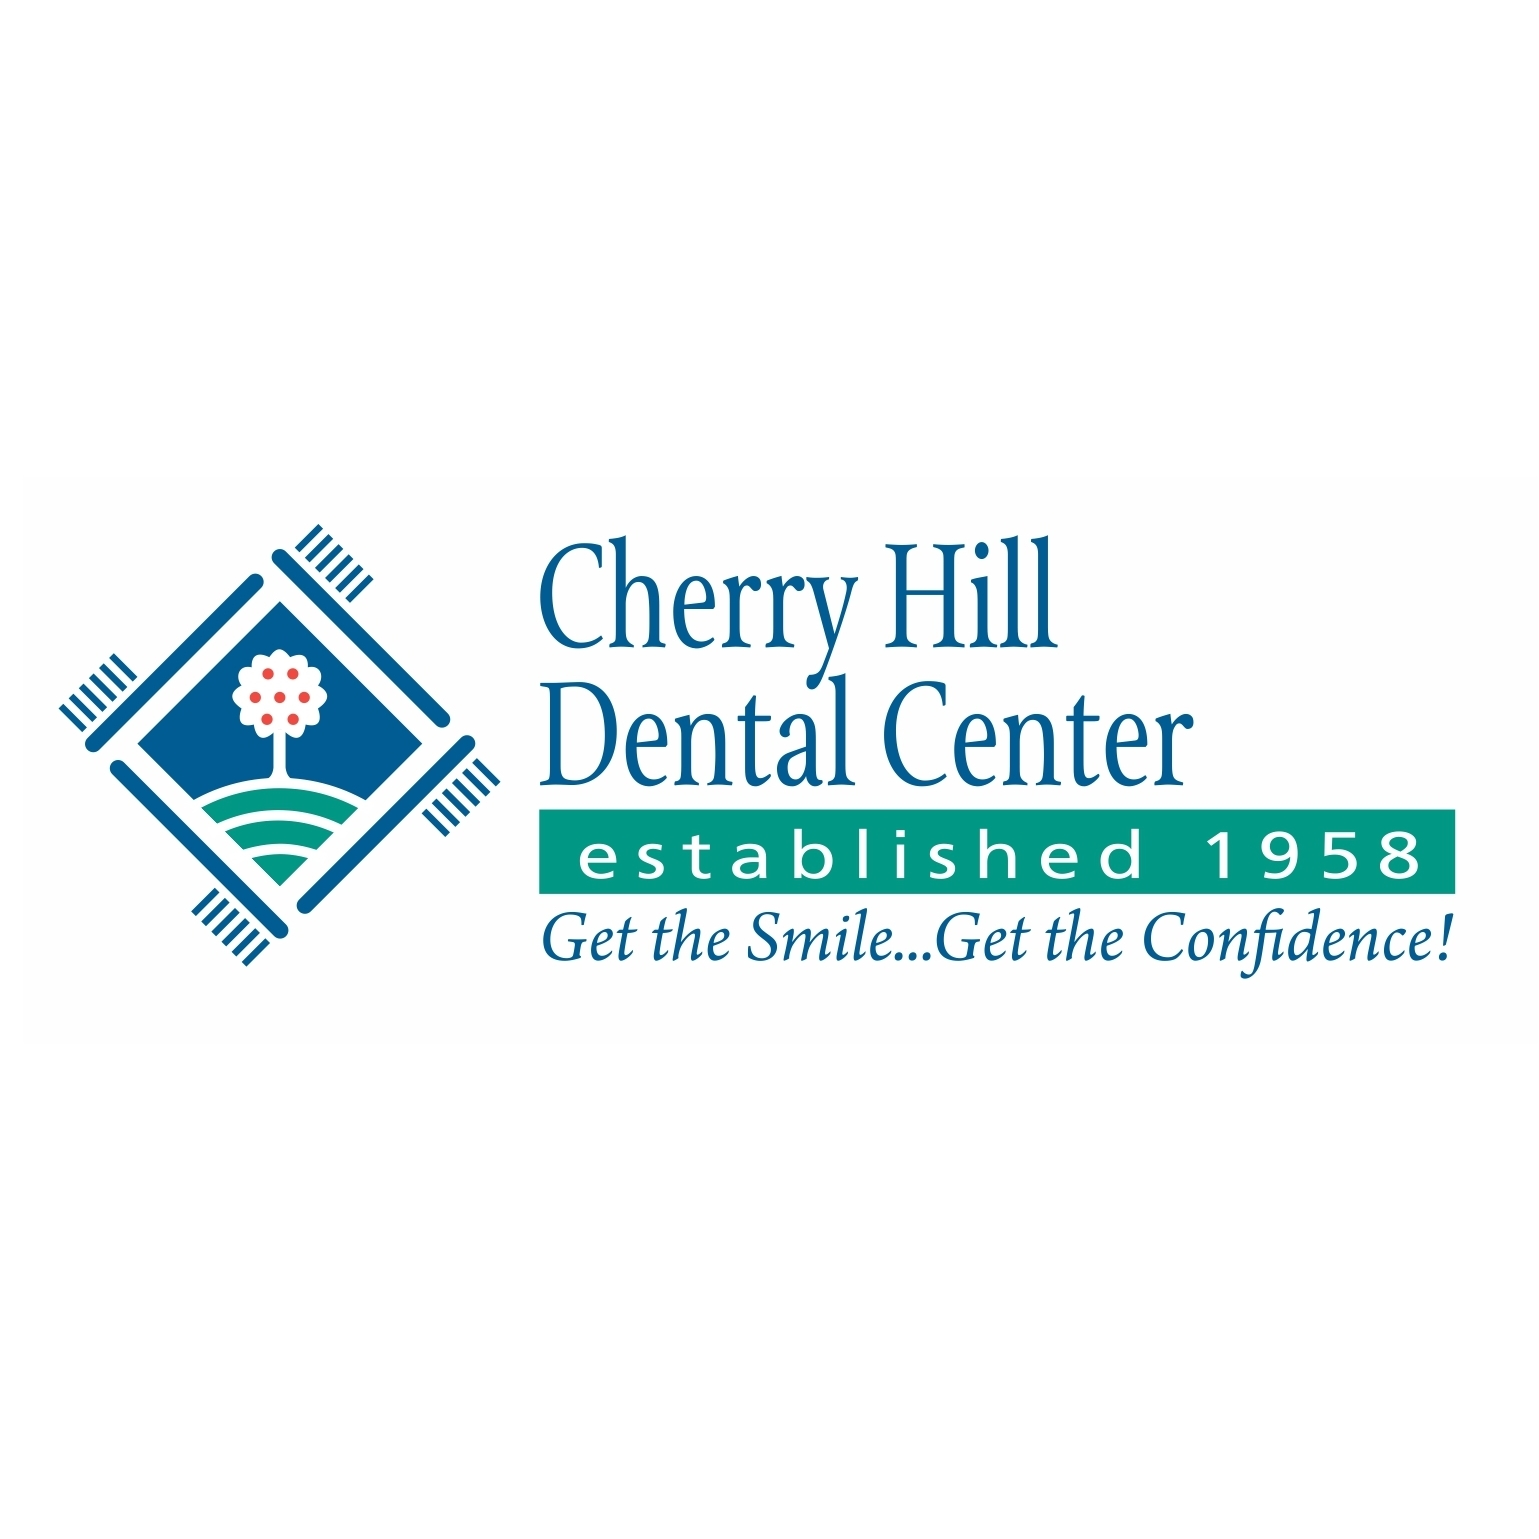 Cherry Hill Dental Center In Garden City Mi Cosmetic Dentistry Yellow Pages Directory Inc